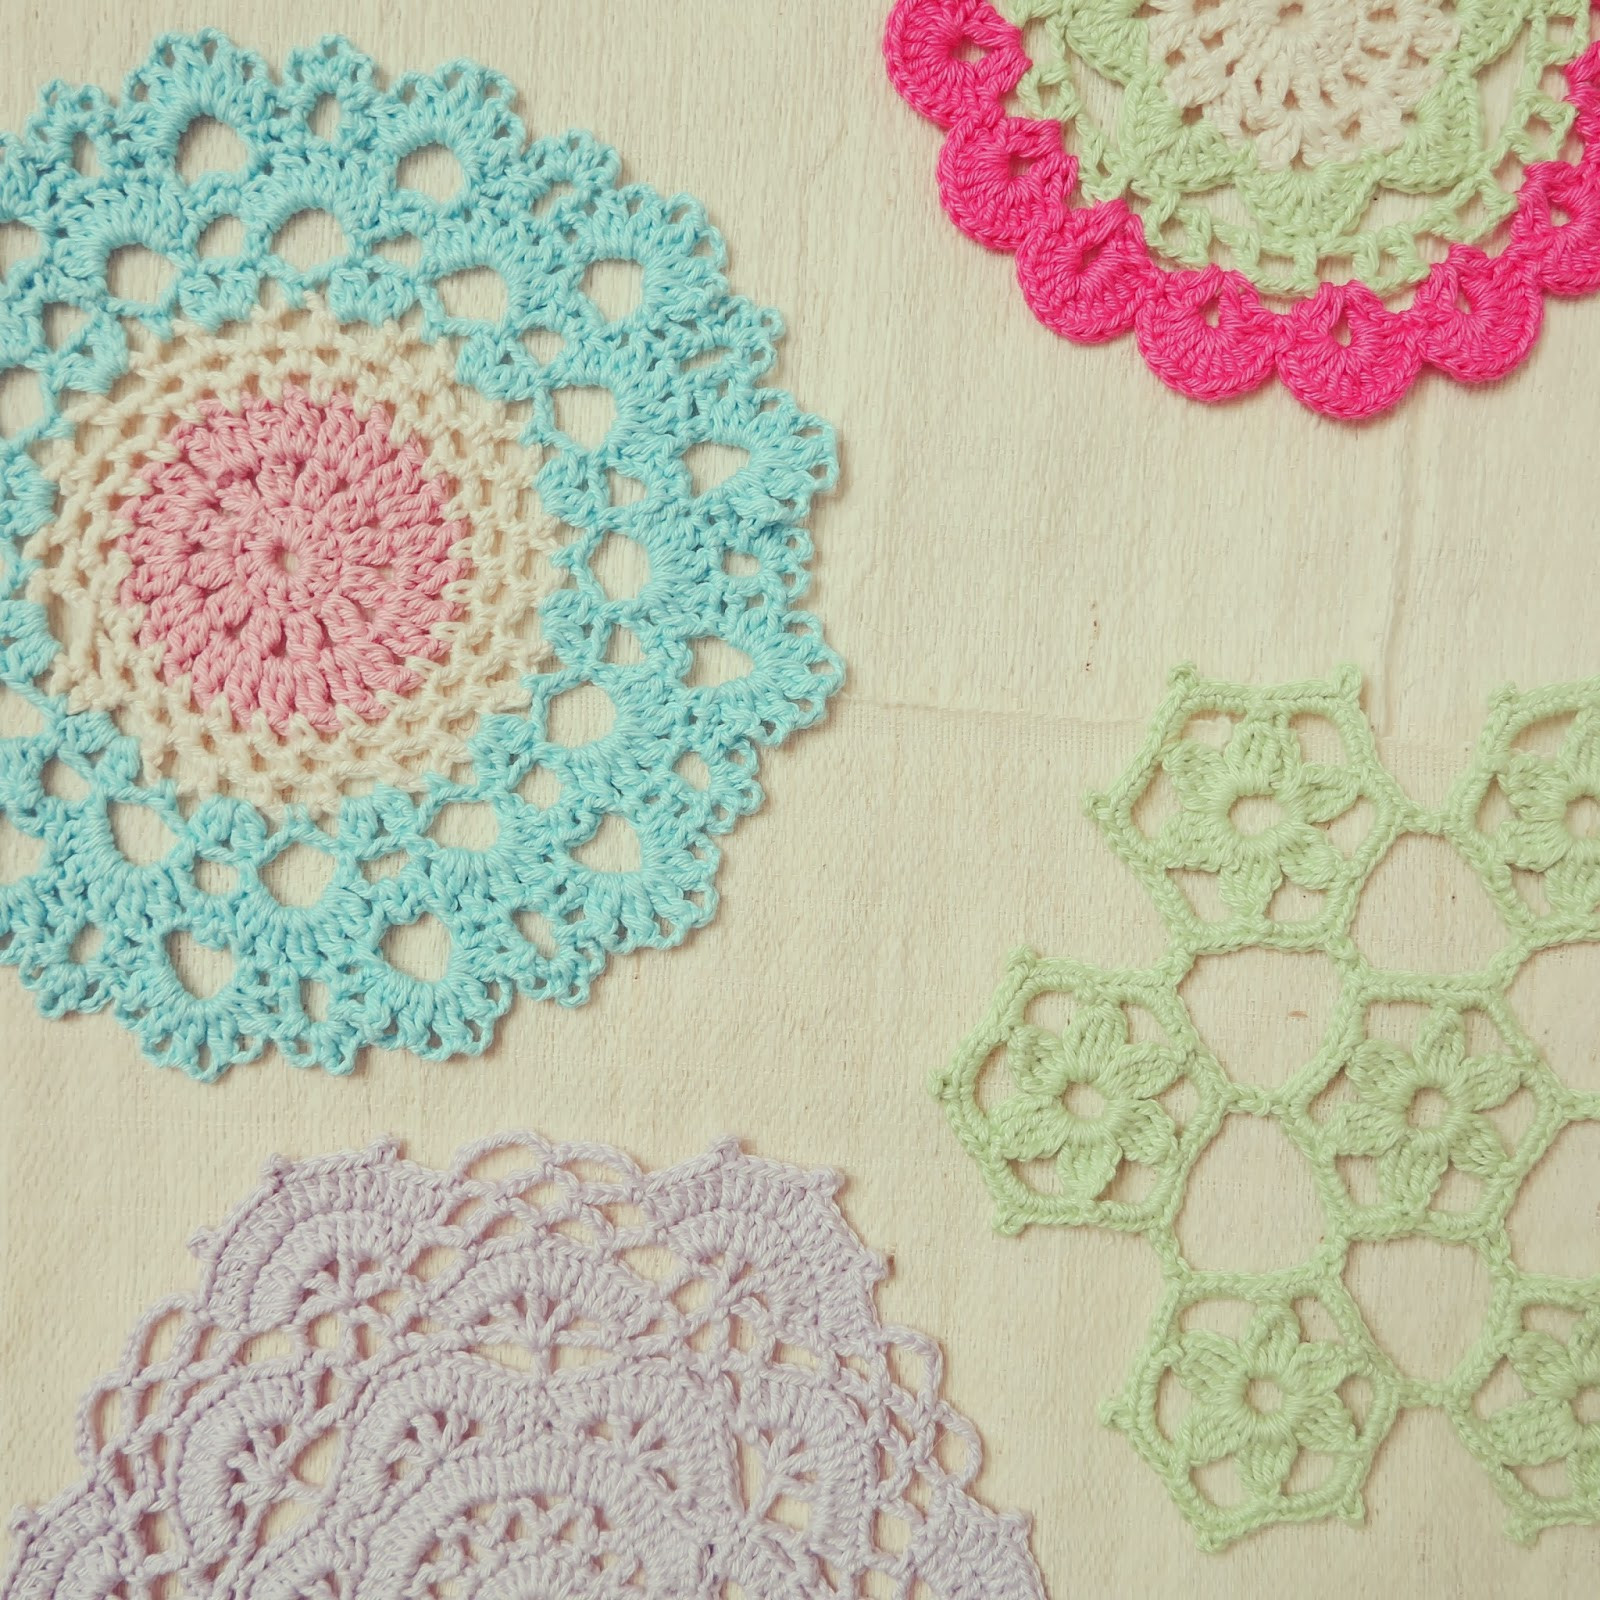 Doily Patterns Luxury byhaafner Crochet A Doily A Day Of Innovative 50 Models Doily Patterns